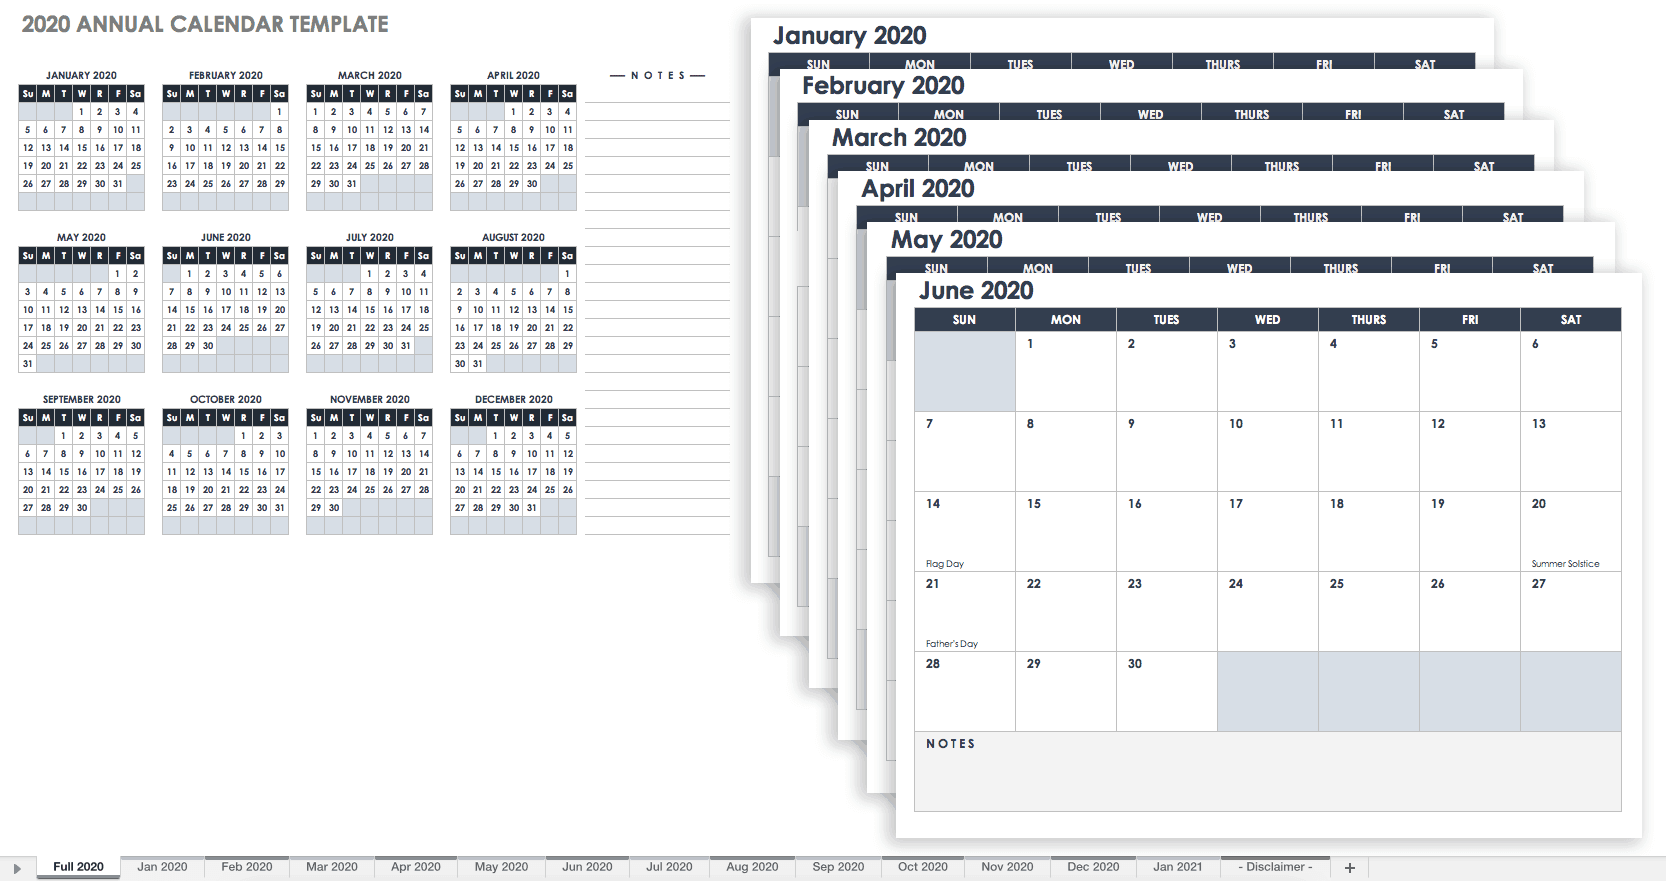 Task Monthly Calendar Templates For September To December 2020 Free, Printable Excel Calendar Templates for 2019 & On | Smartsheet